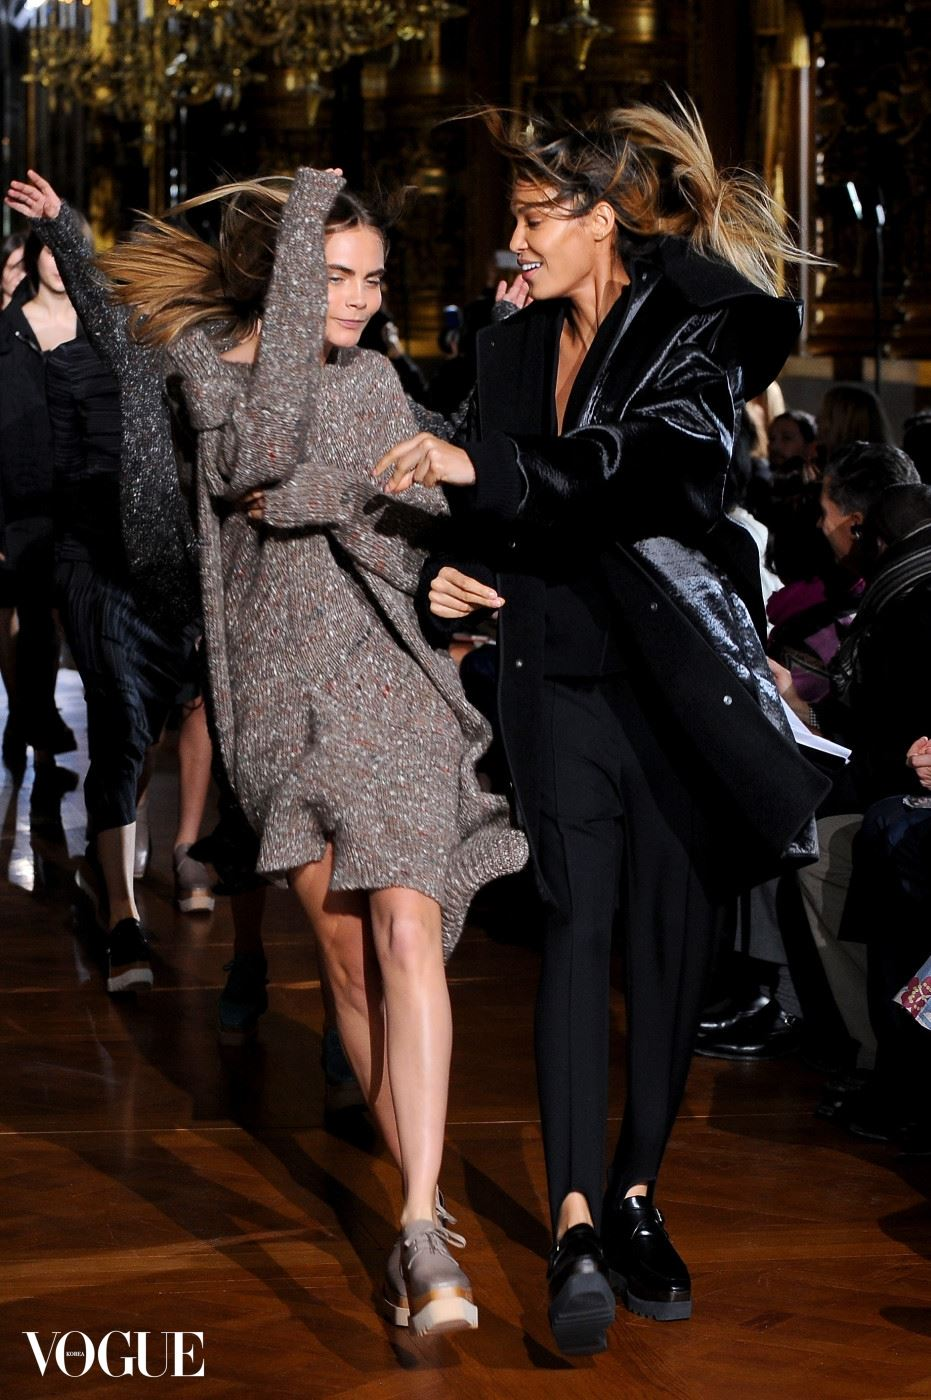 PARIS, FRANCE - MARCH 03:  Joan Smalles and Cara Delevigne walk the runway during the Stella McCartney show as part of the Paris Fashion Week Womenswear Fall/Winter 2014-2015  on March 3, 2014 in Paris, France.  (Photo by Francois Durand/Getty Images)